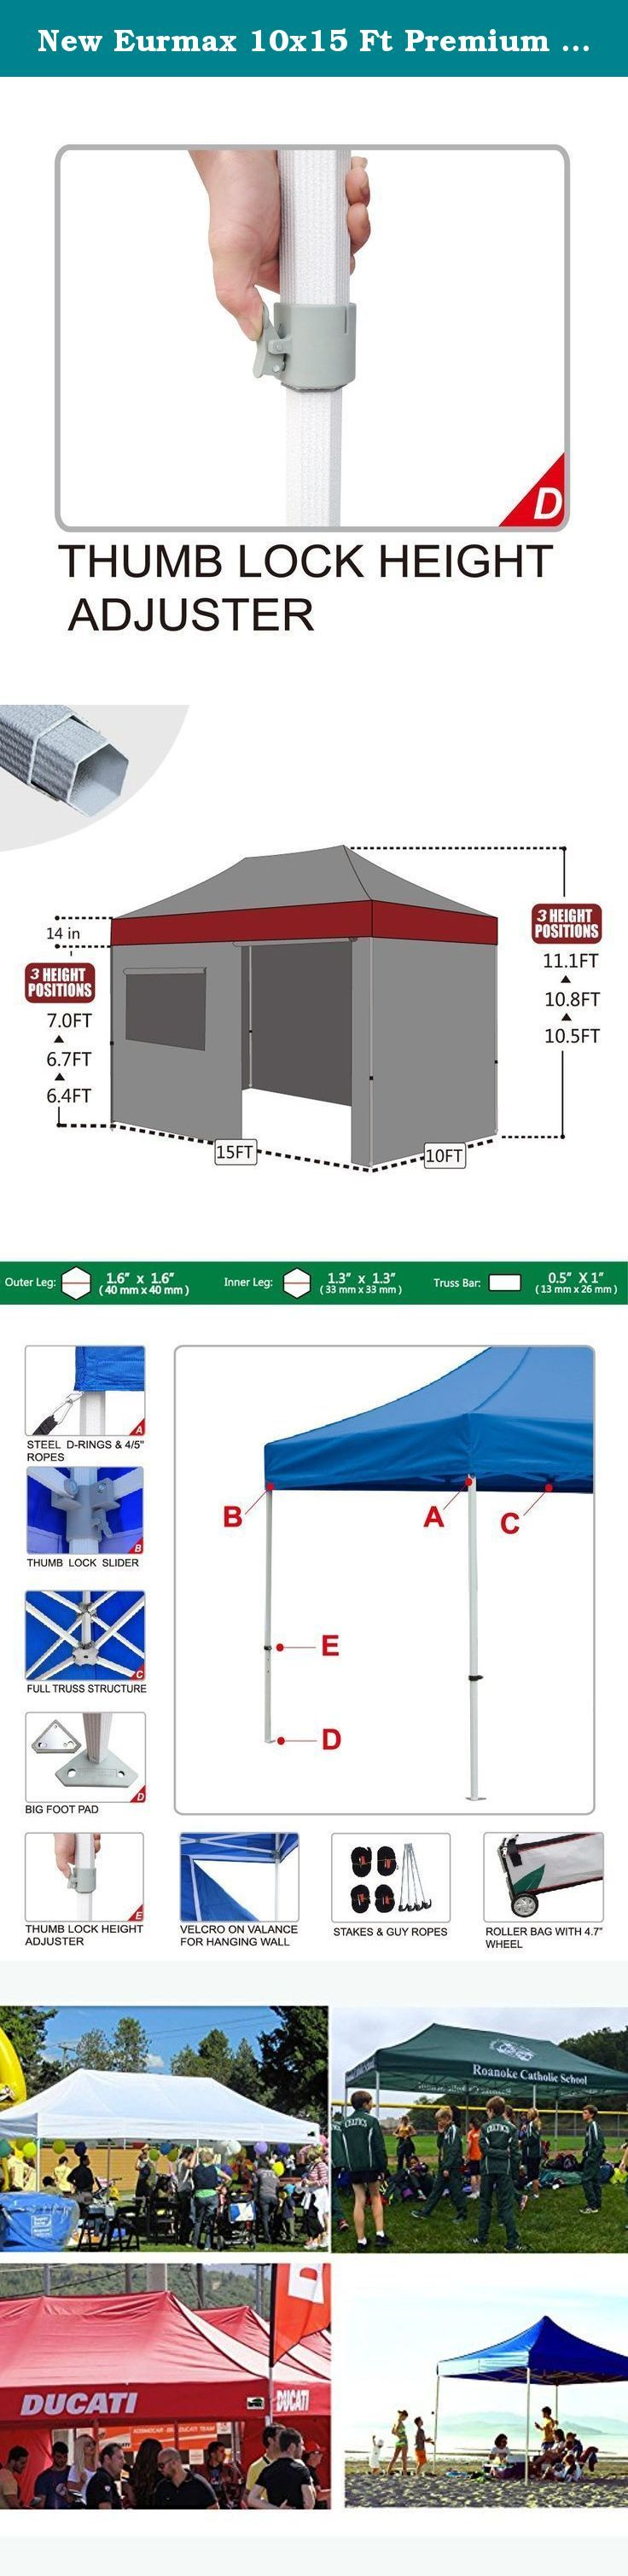 """New Eurmax 10x15 Ft Premium Ez Pop up Instant Canopy Outdoor Canopy Party Tent Gazebo Commercial Grade +4 Removable Zipper End Sidewalls Bonus Roller Bag (White). Eurmax Premium easy pop-up canopy is our mid commercial level canopy with 1.77"""" hexagonal aluminum leg. 3 YEAR WARRANTY! It can be quickly erected by two people without any tools. The canopy is light in weight and high in quality. This portable canopy comes with a super wheeled bag with two 4.7"""" wheels which can handle well even…"""